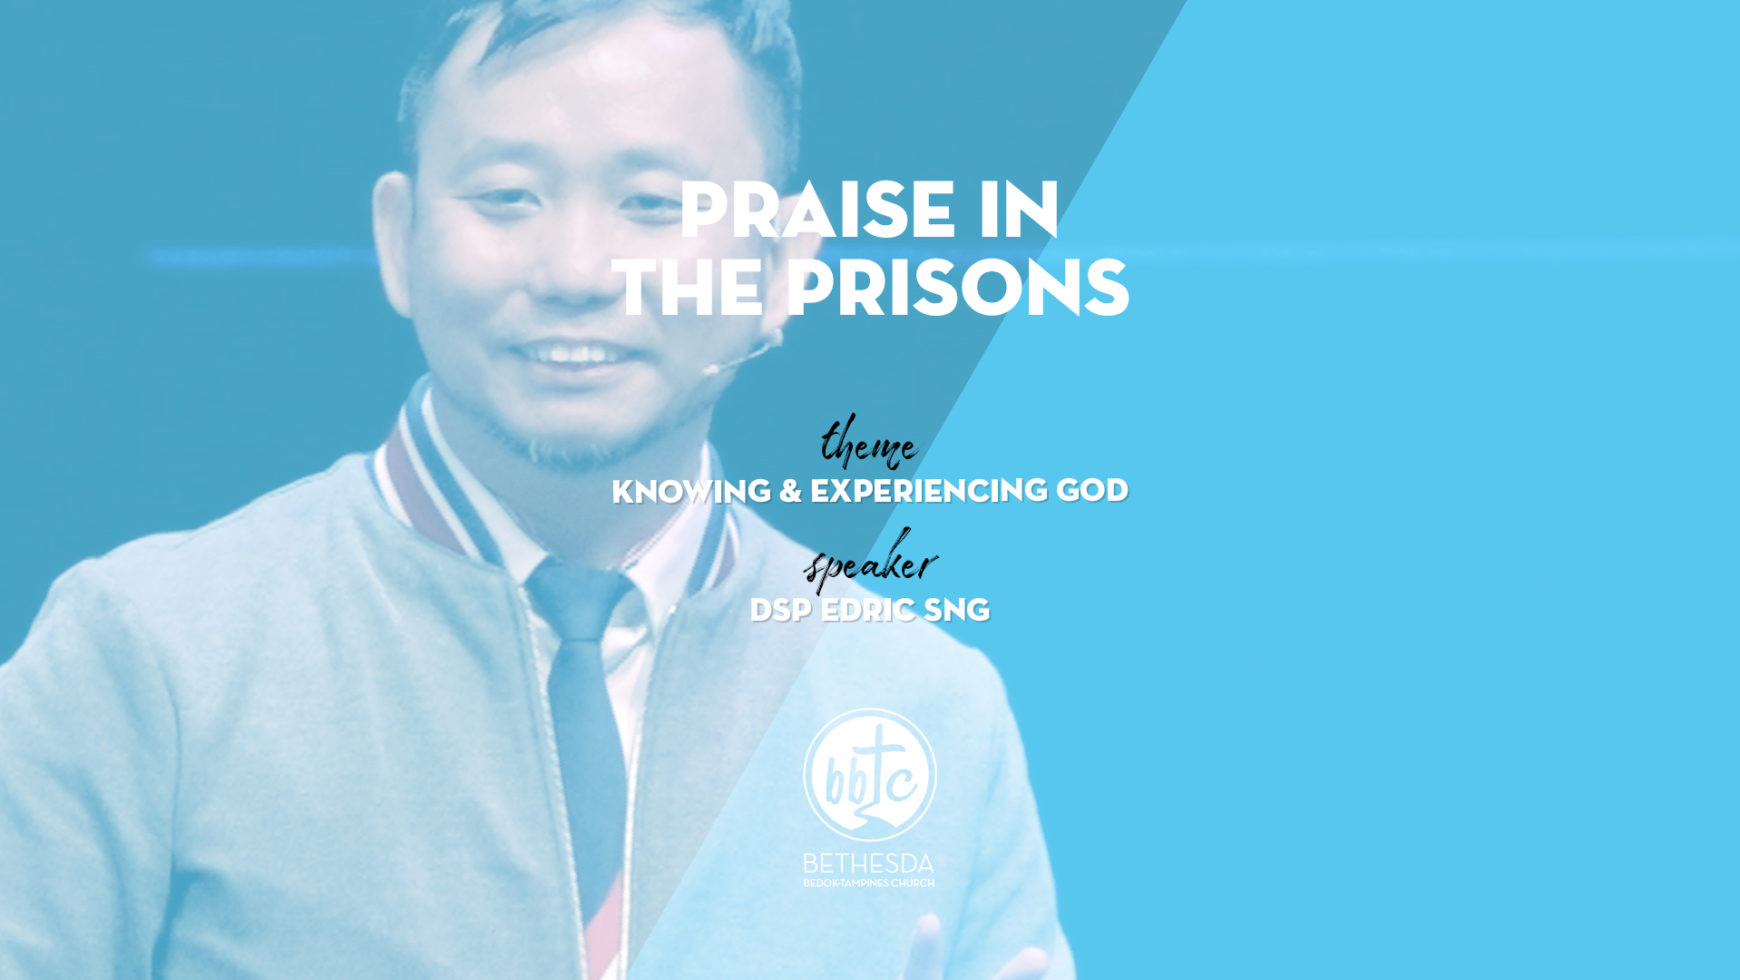 Praise in the Prisons